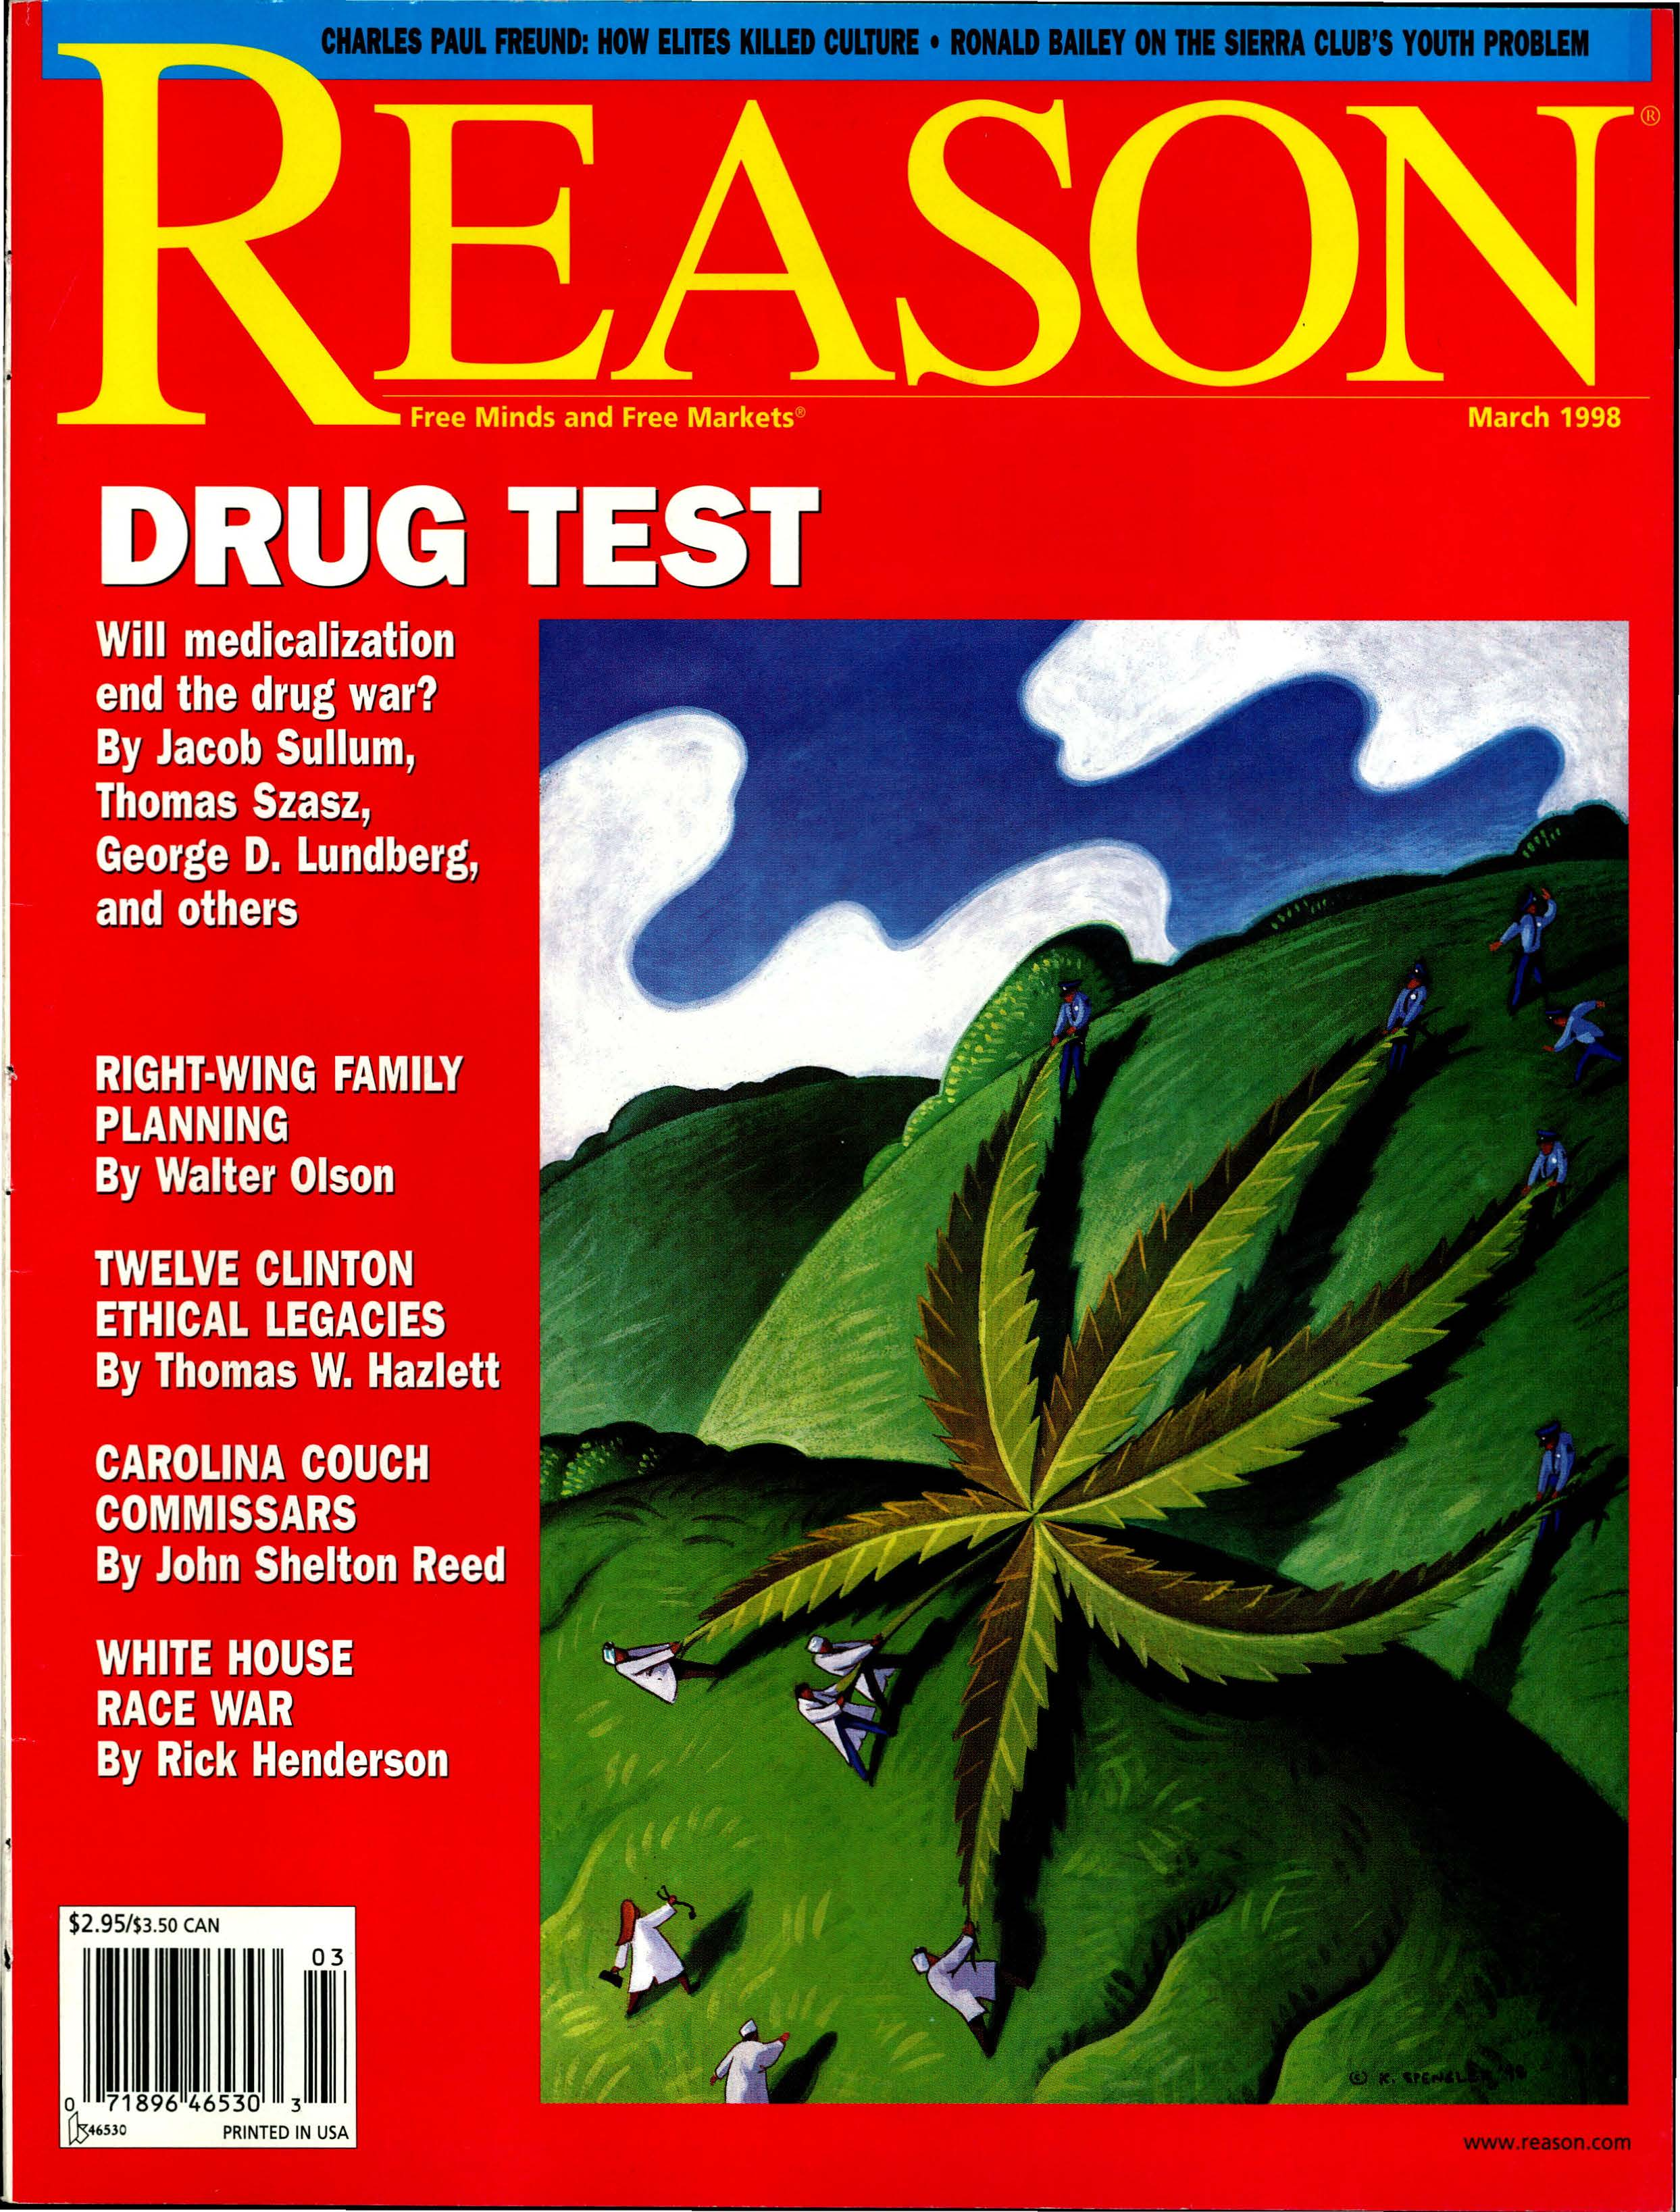 Reason Magazine, March 1998 cover image